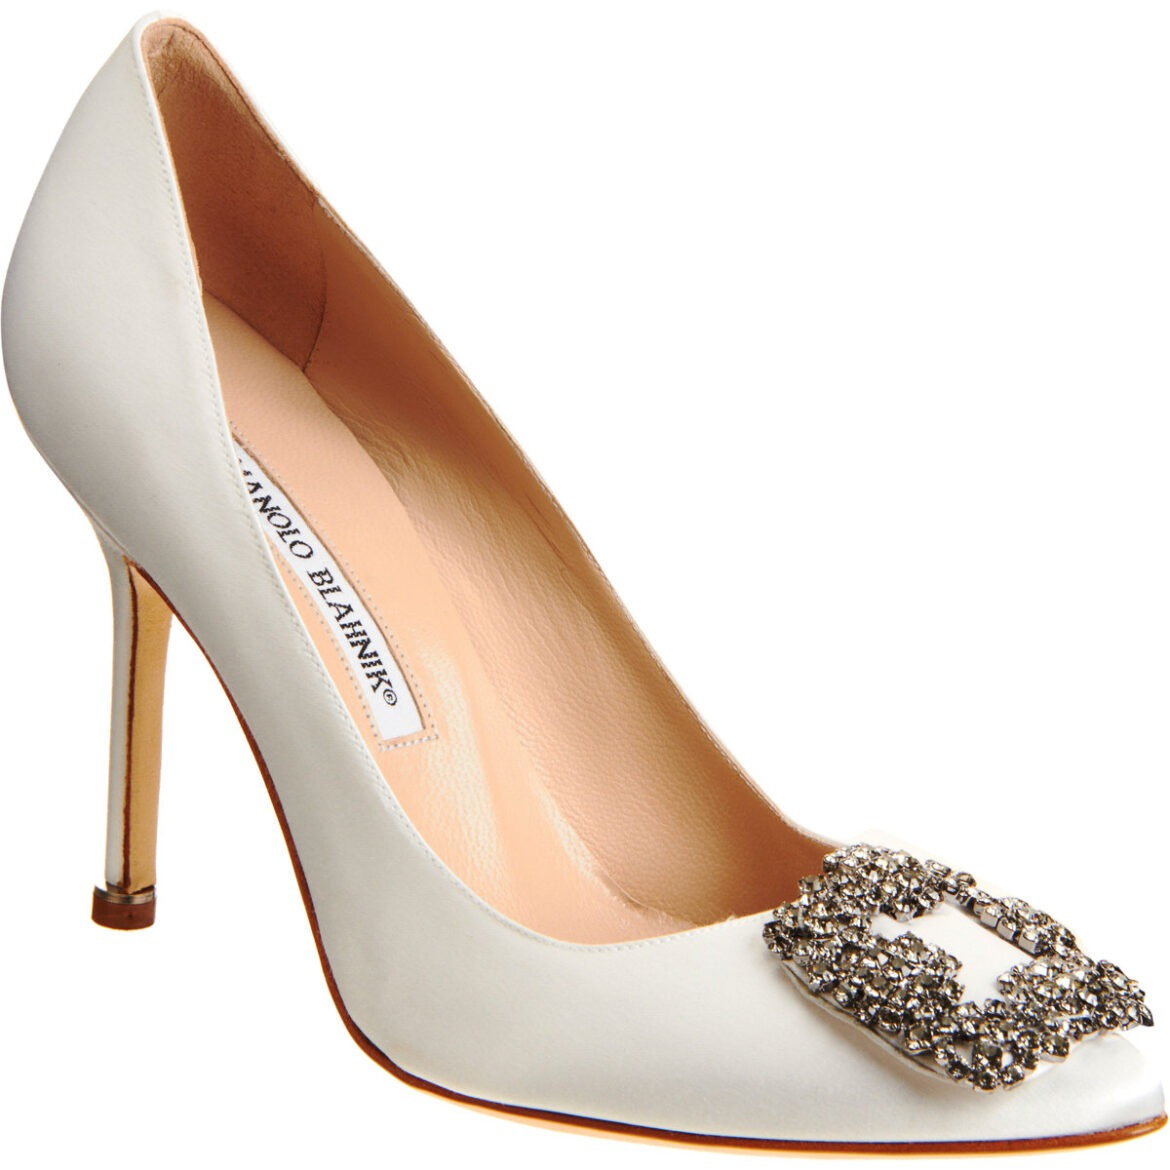 Top five designer bridal shoes co ordination made easy for Who is manolo blahnik